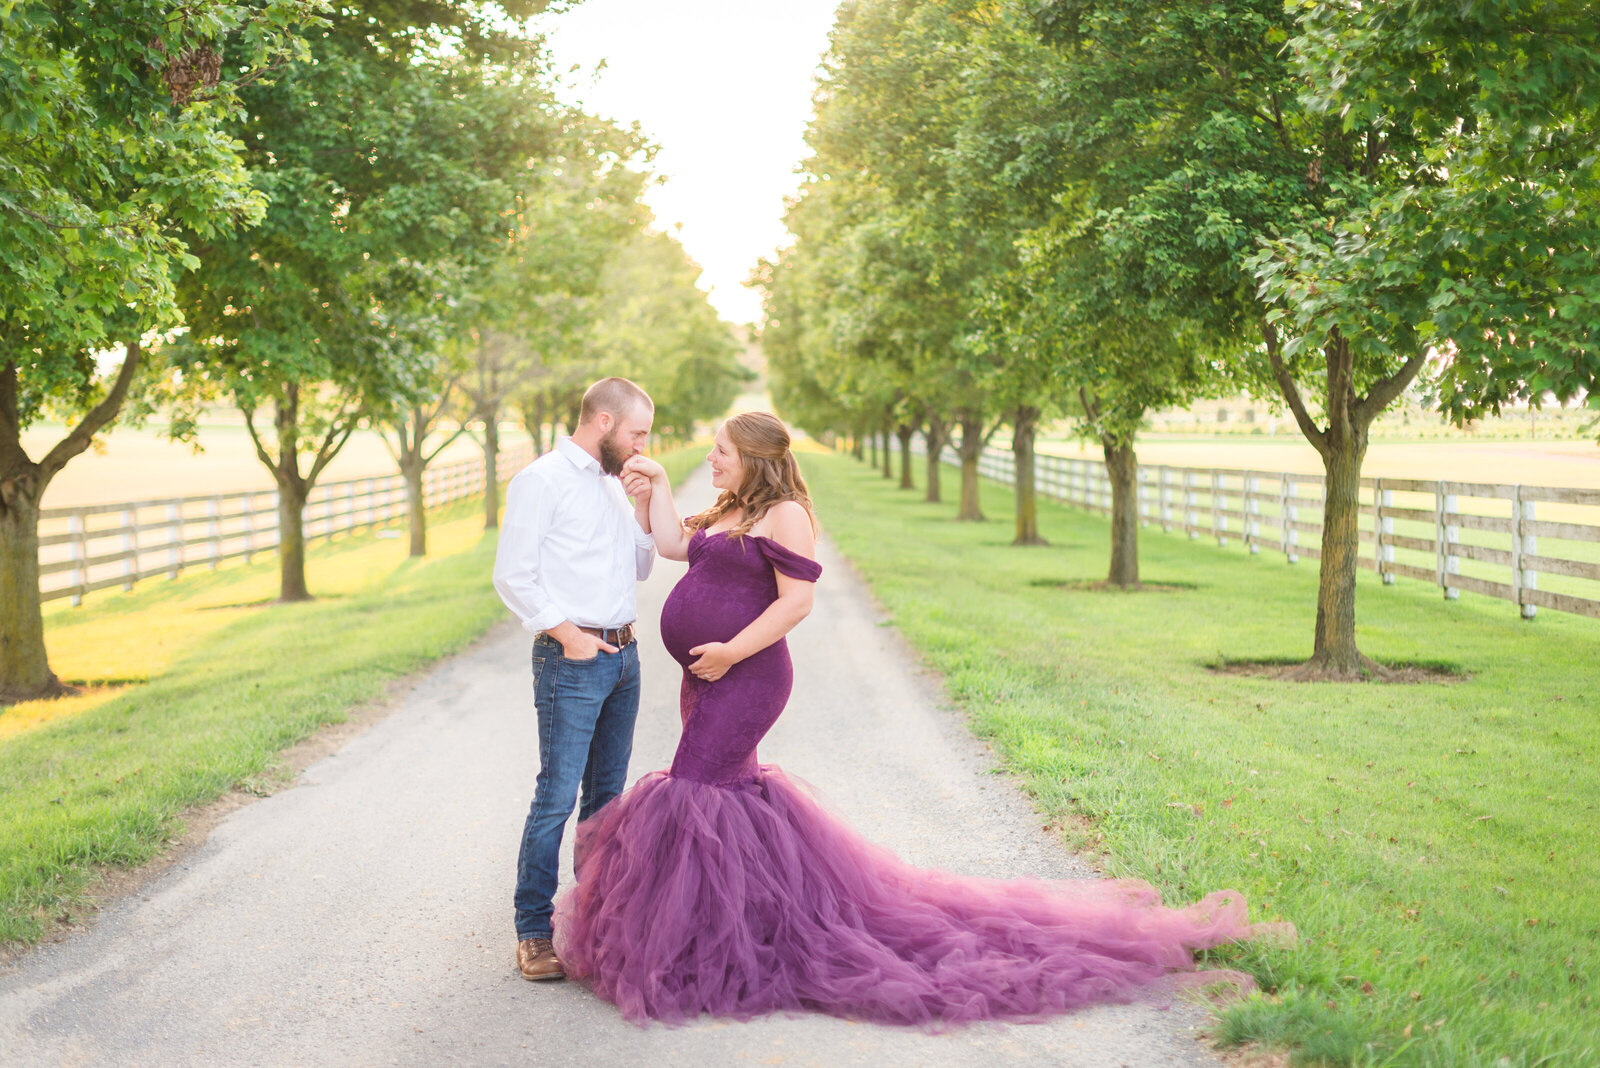 Frederick-Maryland-Maternity-Photographer-Mary-Sarah-Photography